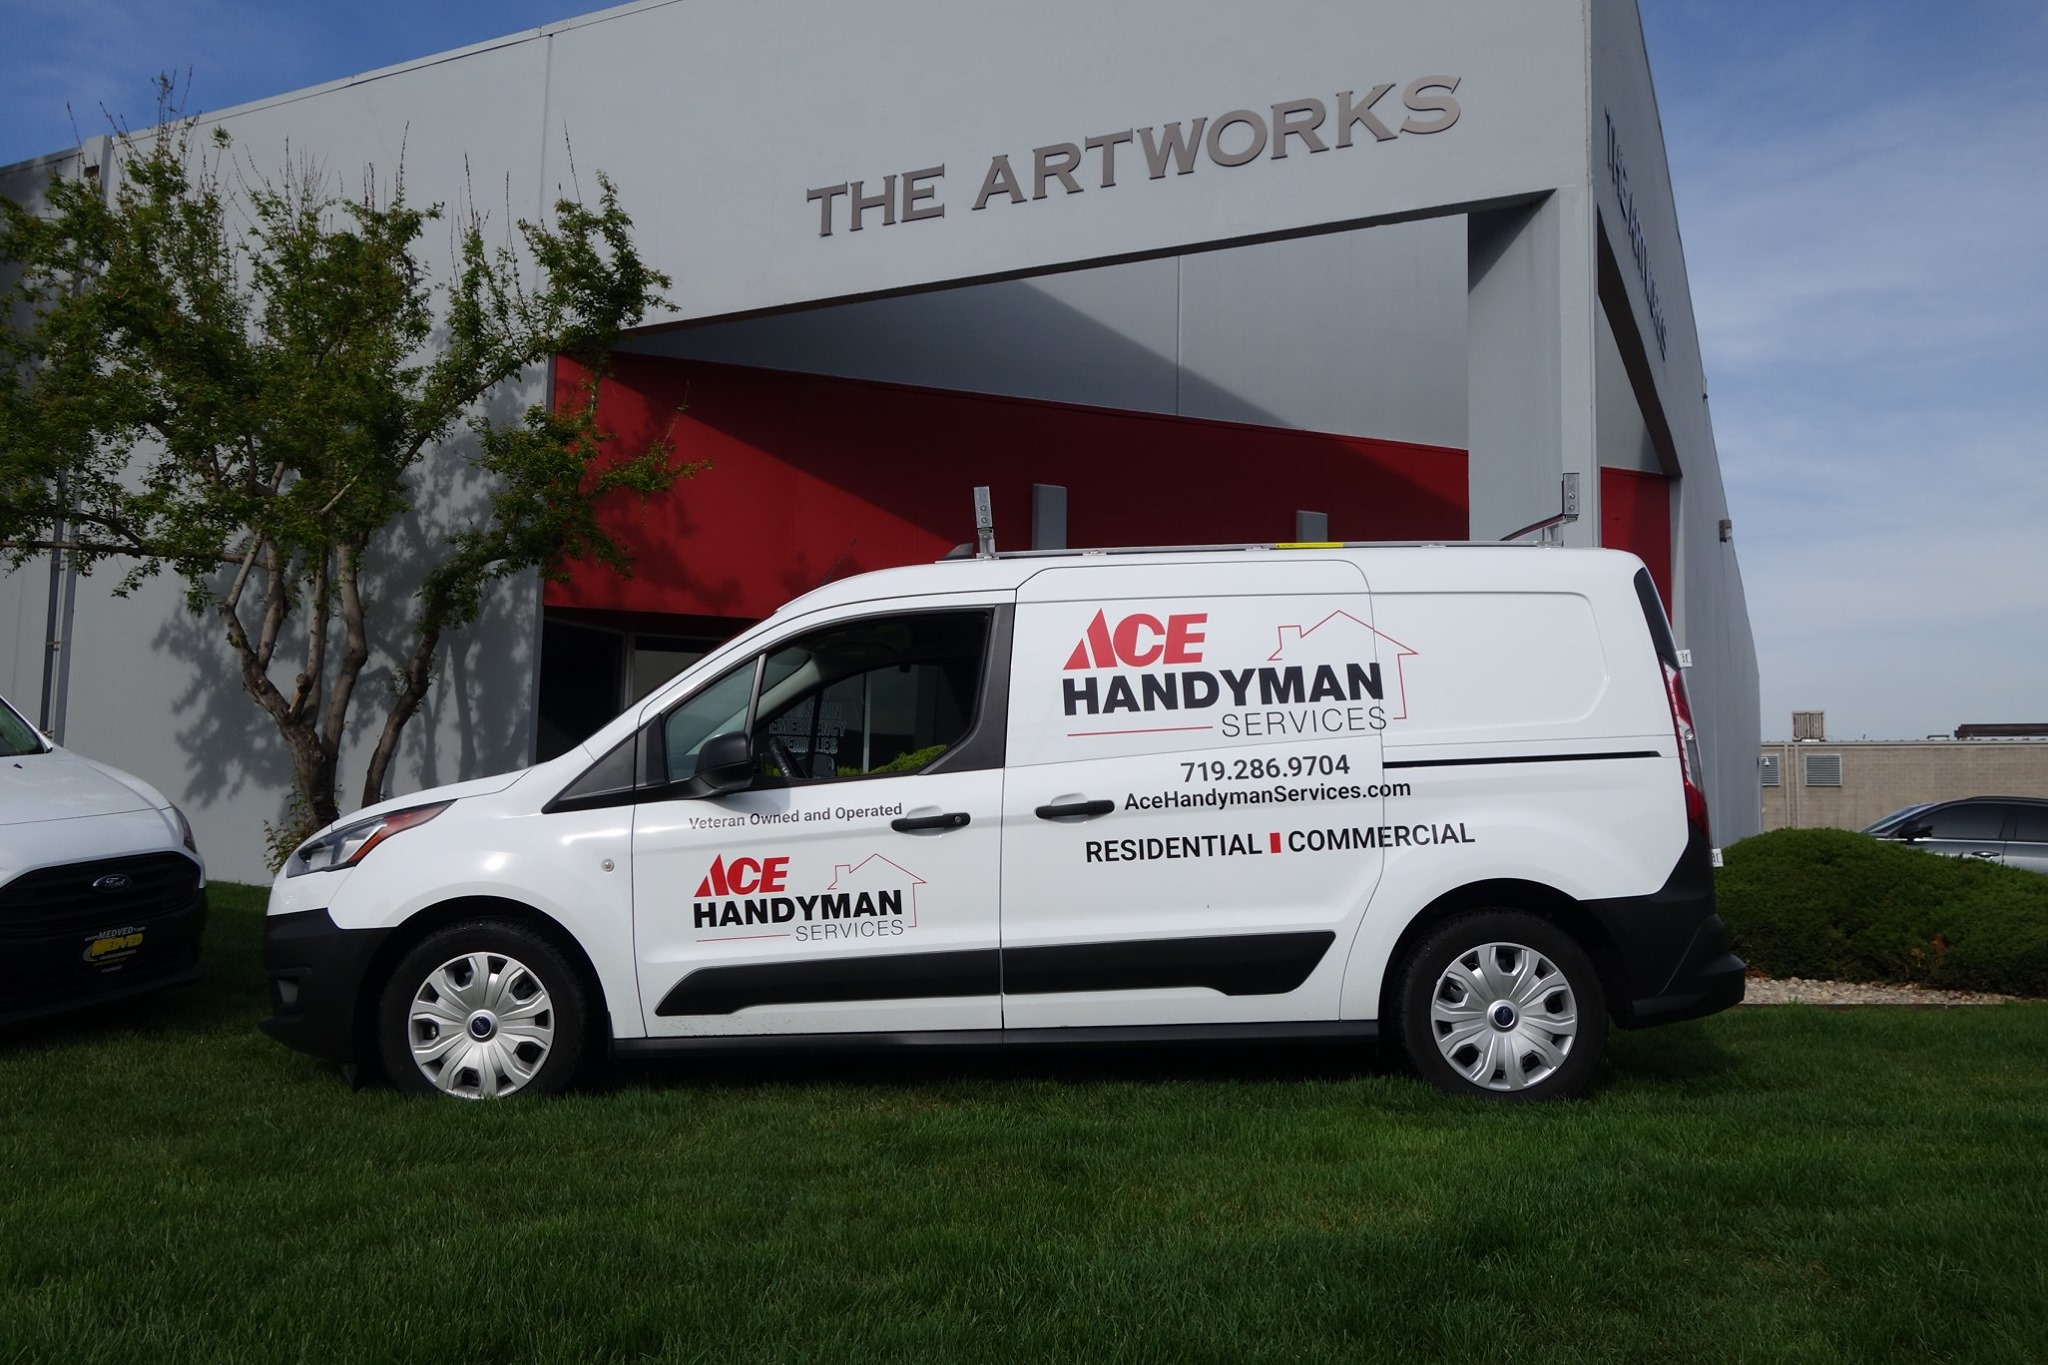 Ace Handyman - Commercial Fleet Graphics